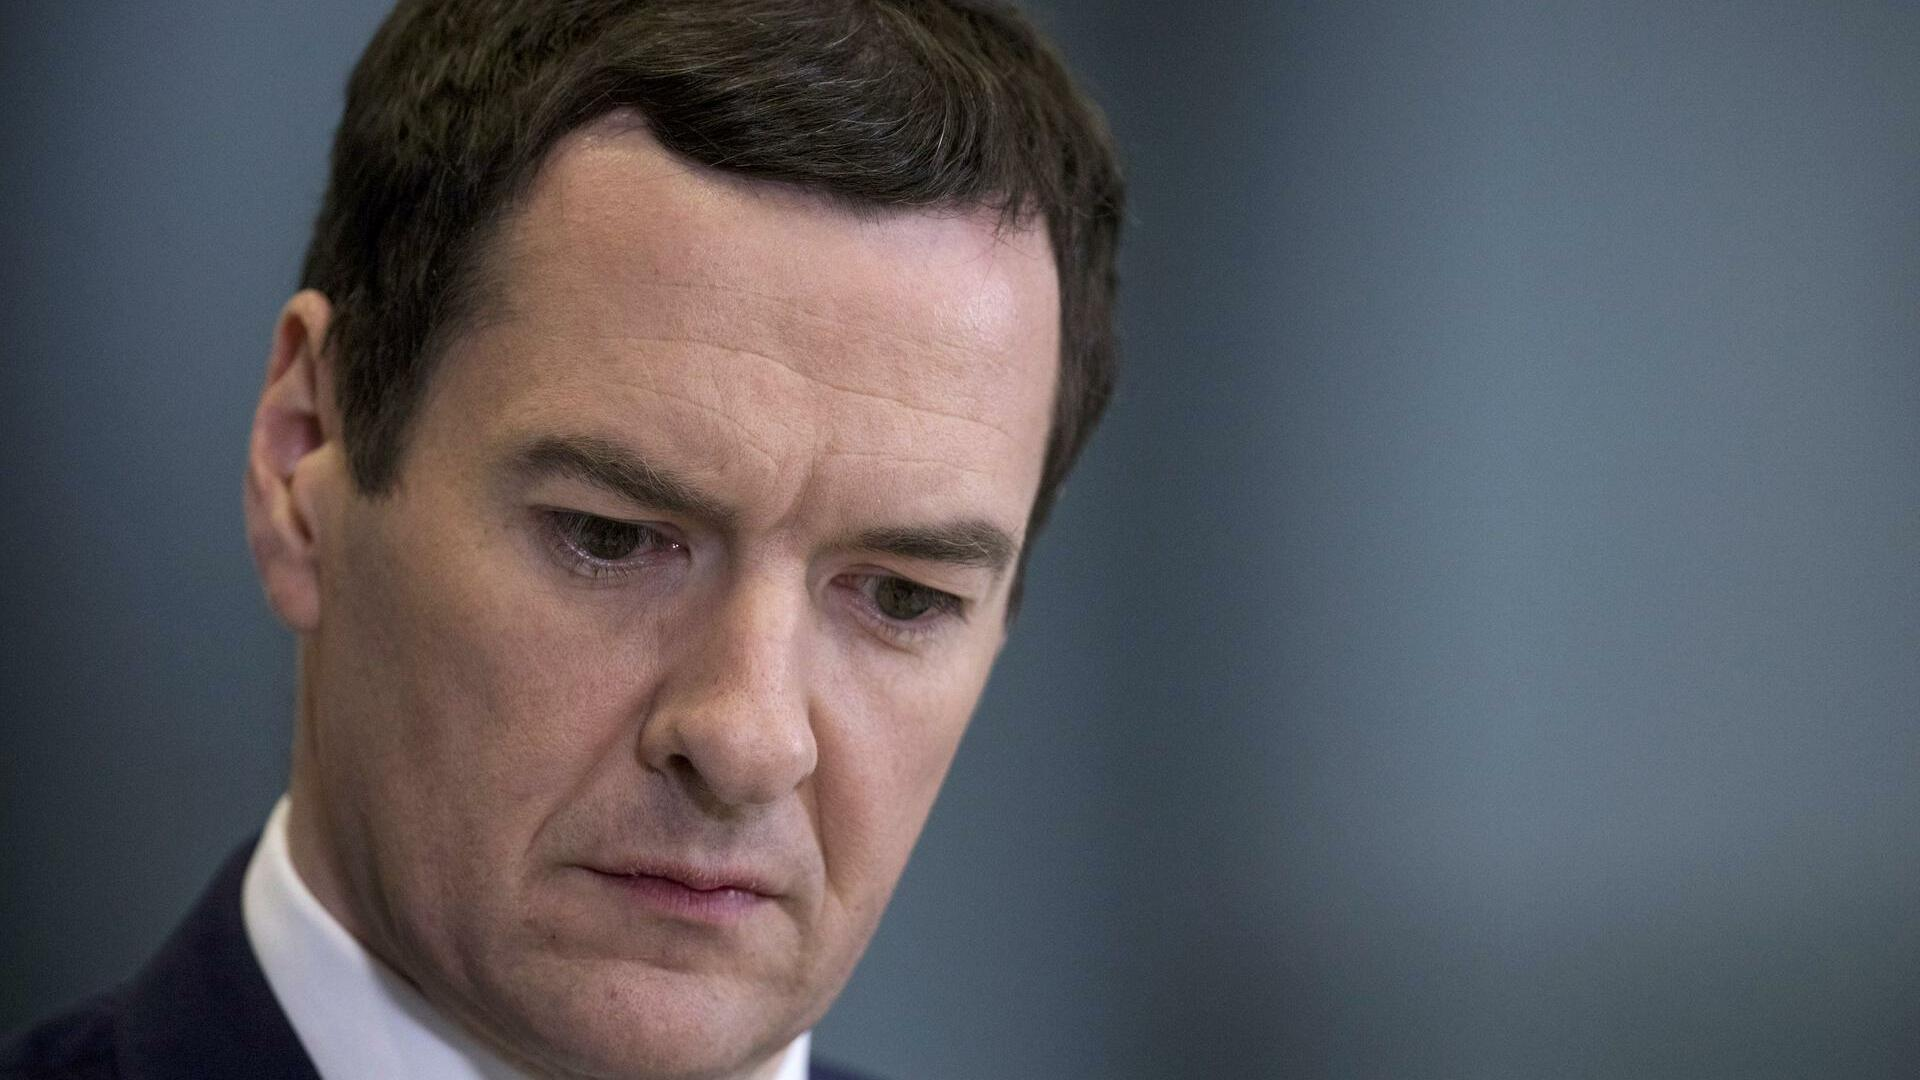 George Osborne Quelle: REUTERS